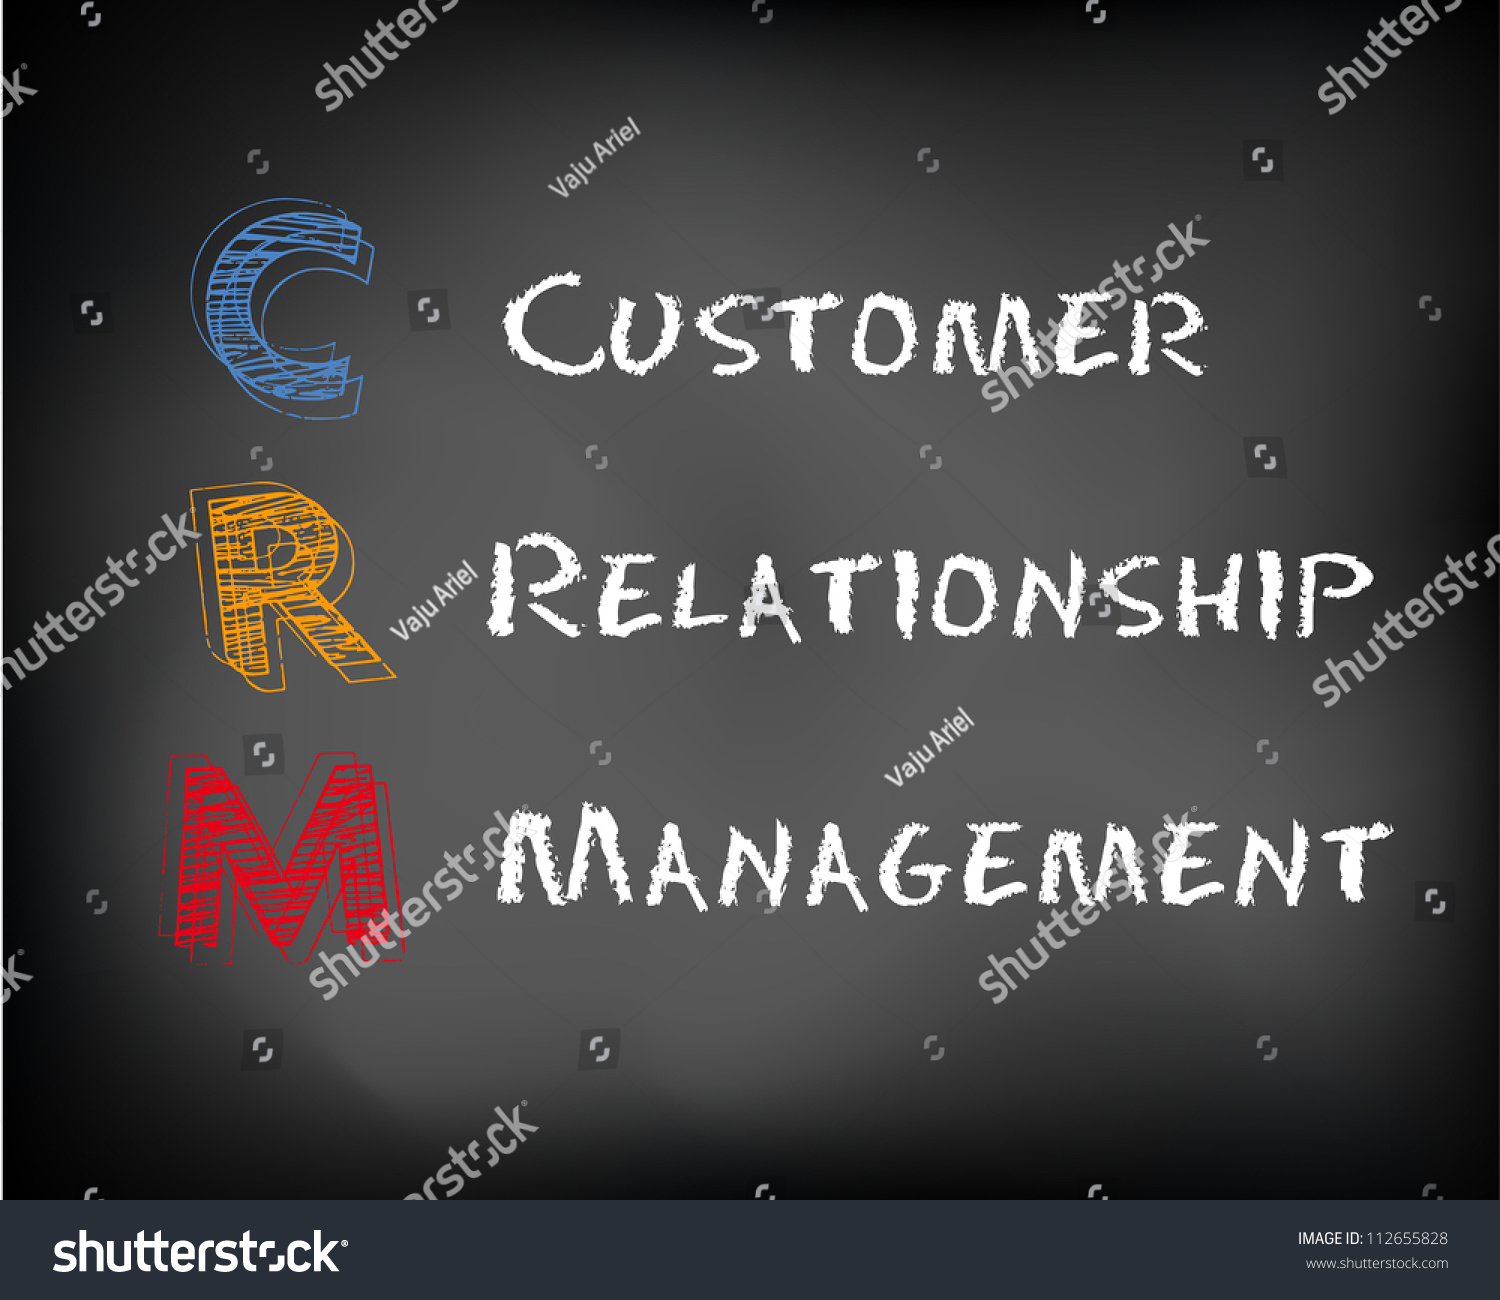 Acronym of relationship